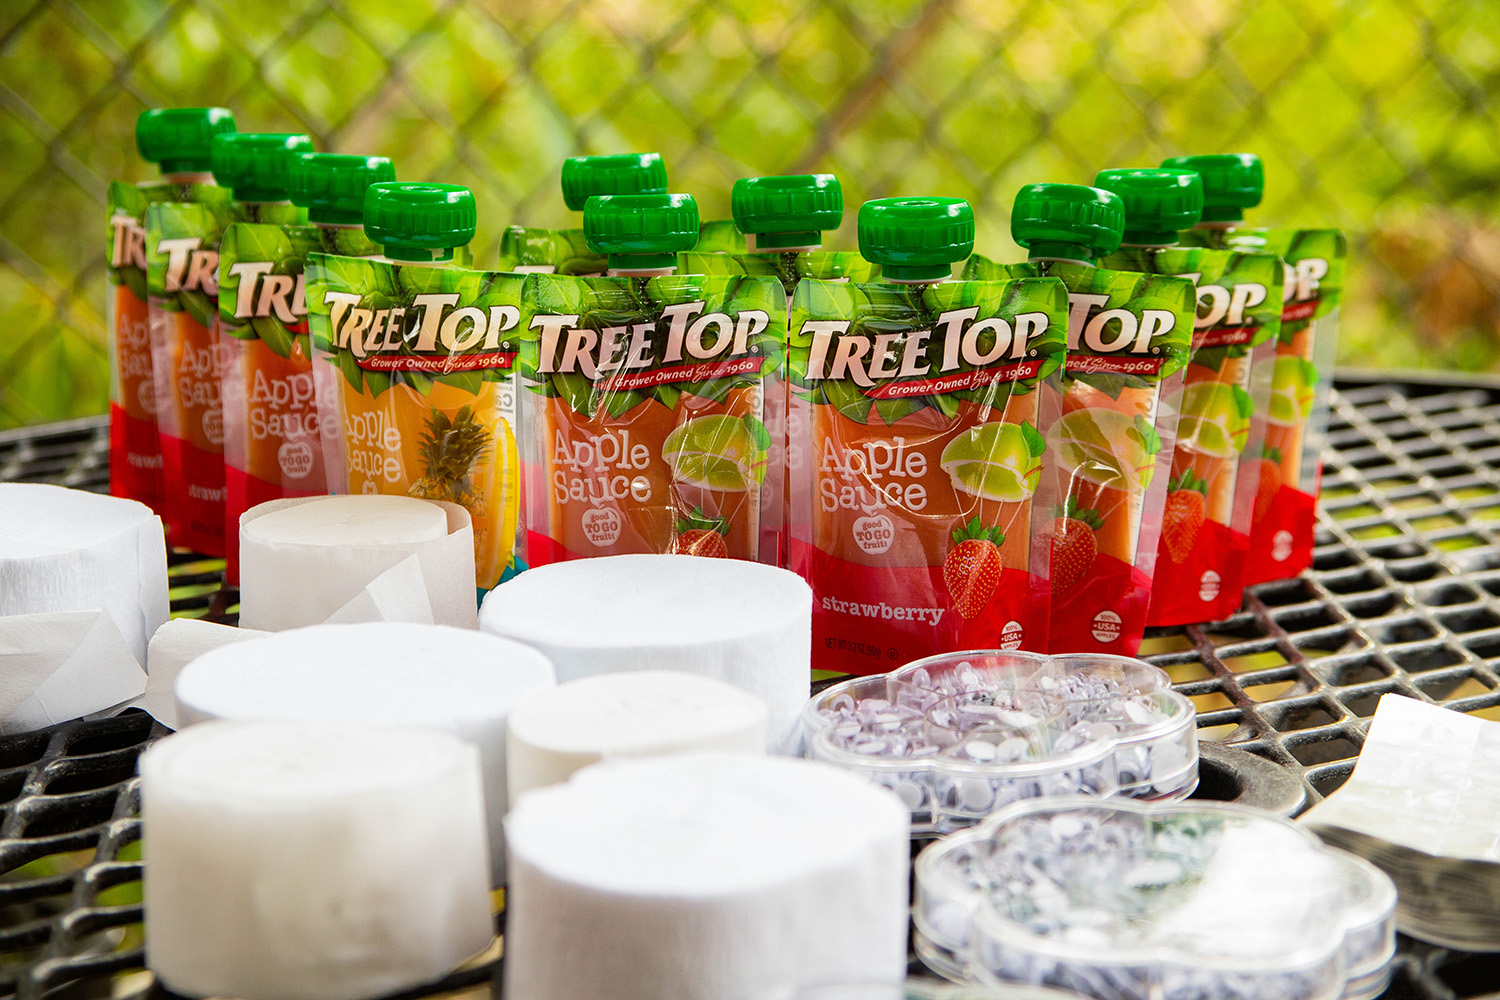 The Tree Top Apple Sauce pouches are delish, and perfect for play date snacks!